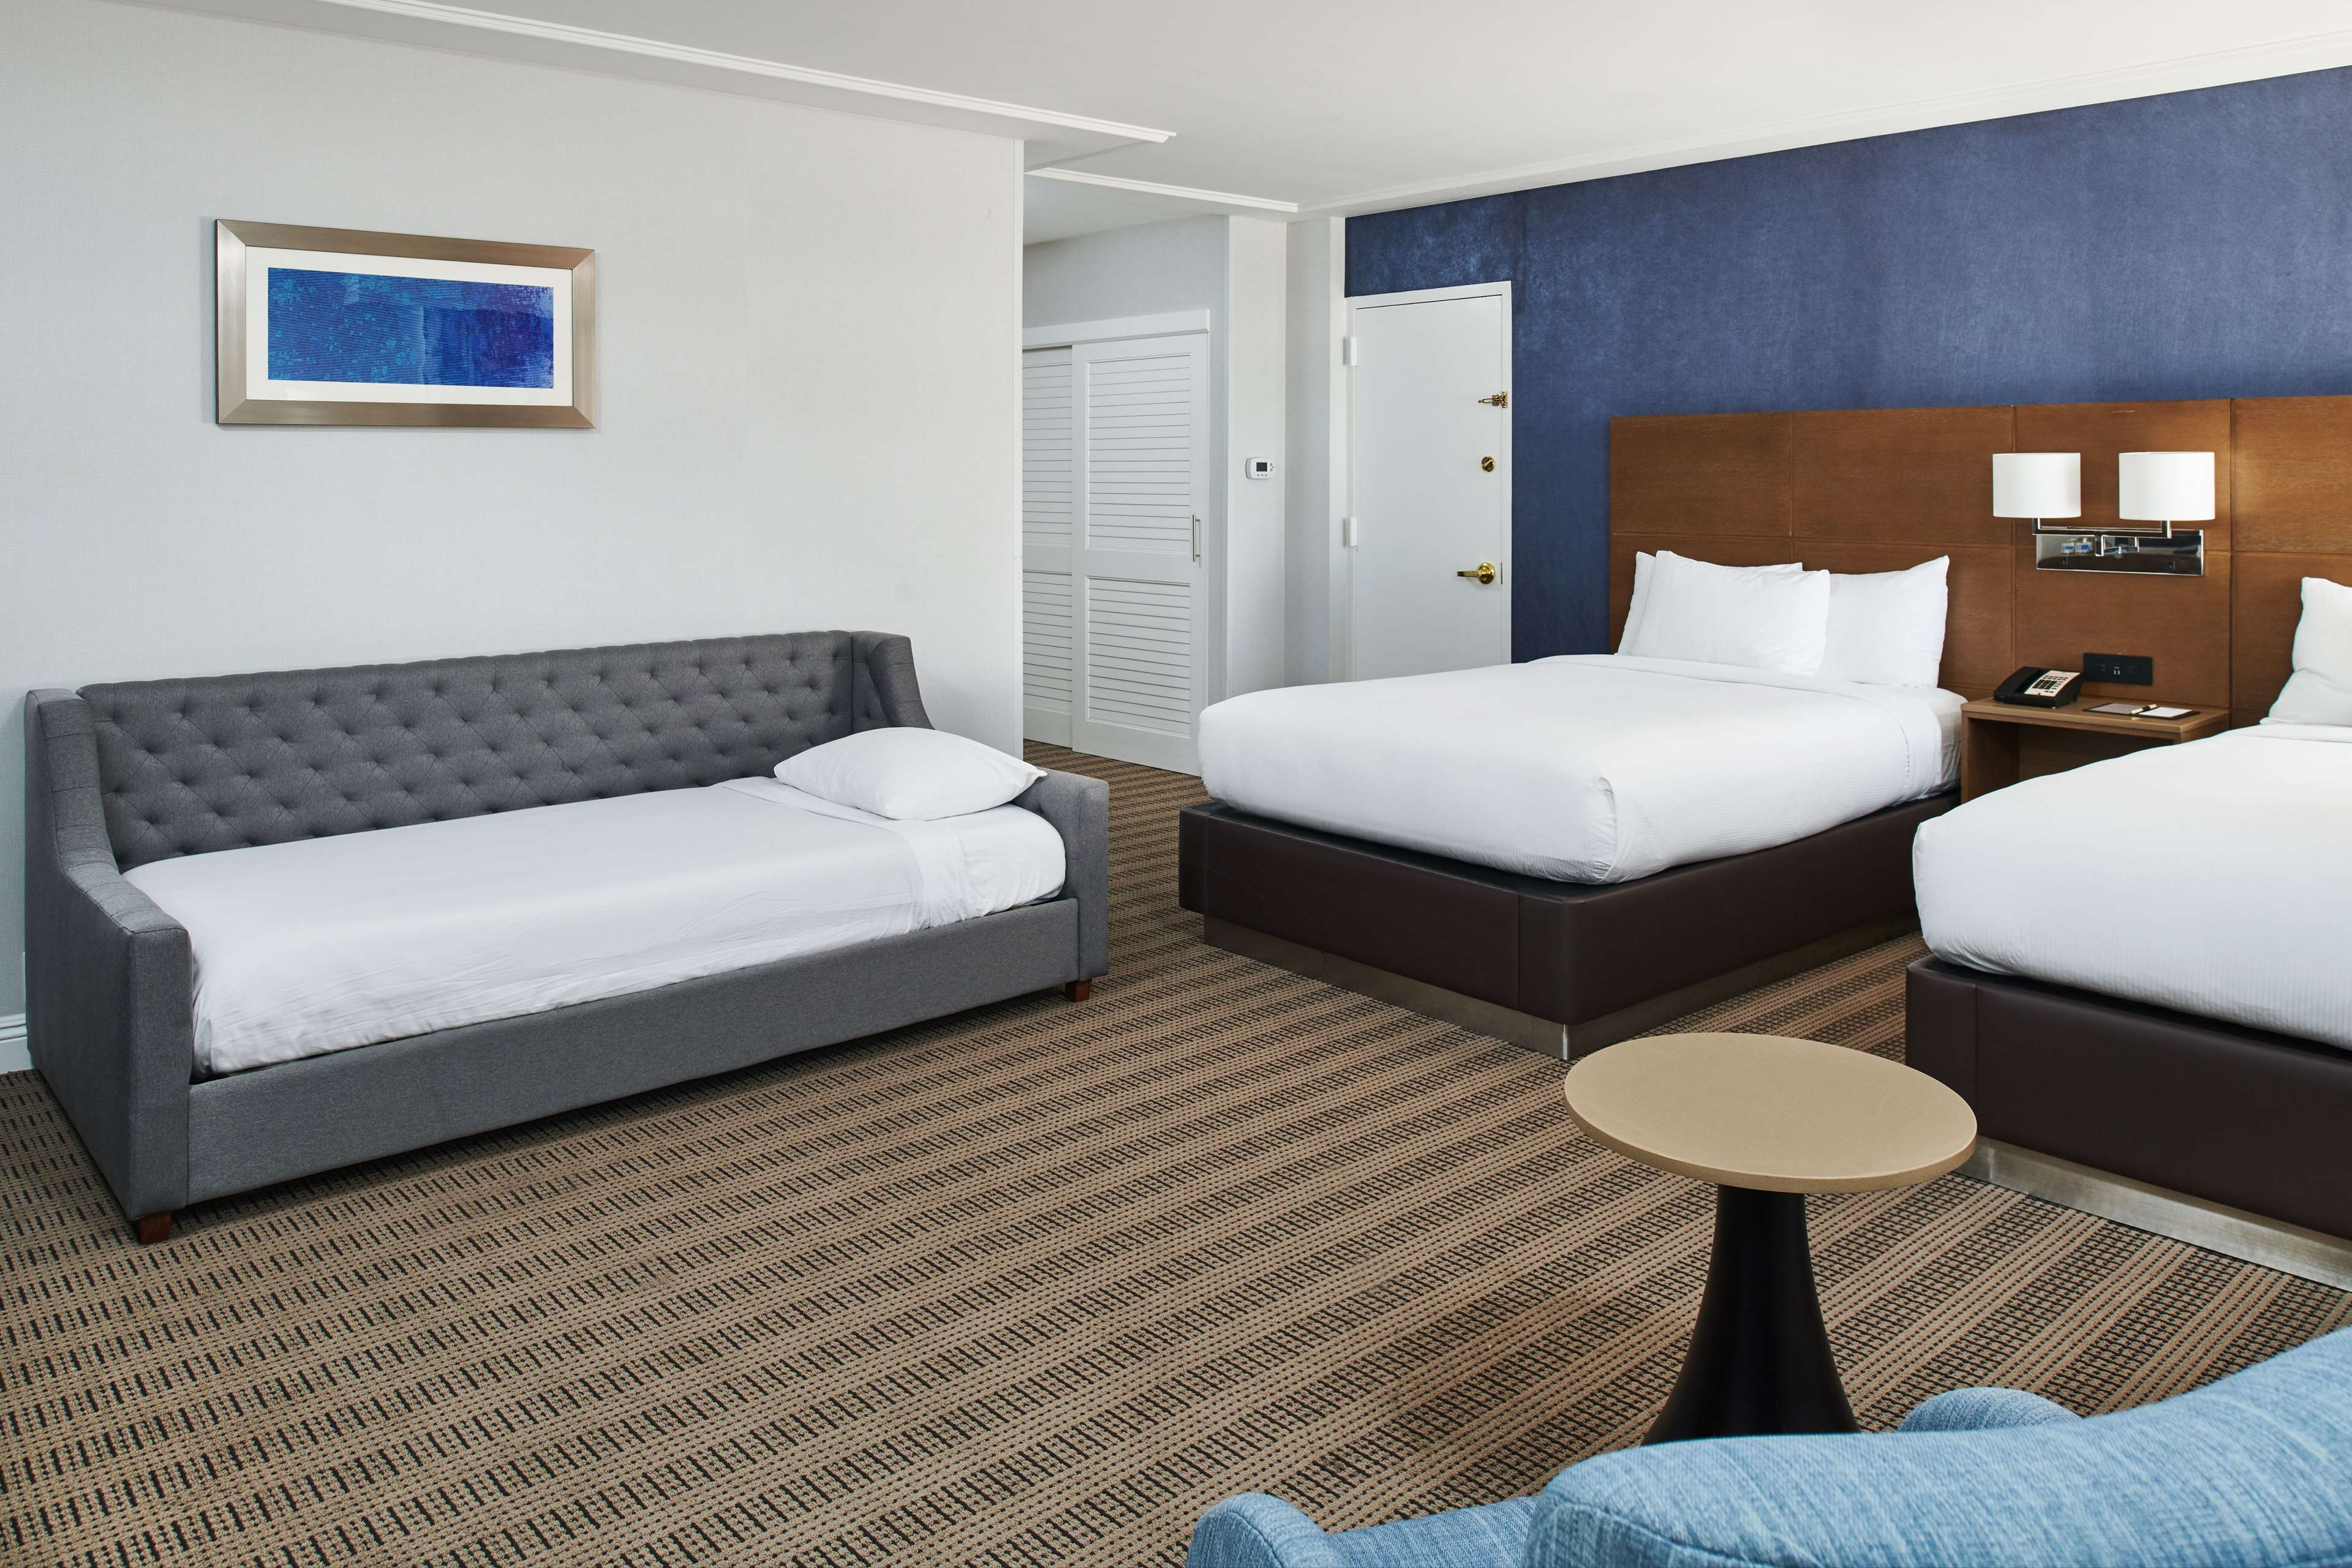 DoubleTree by Hilton Hotel Torrance - South Bay image 26